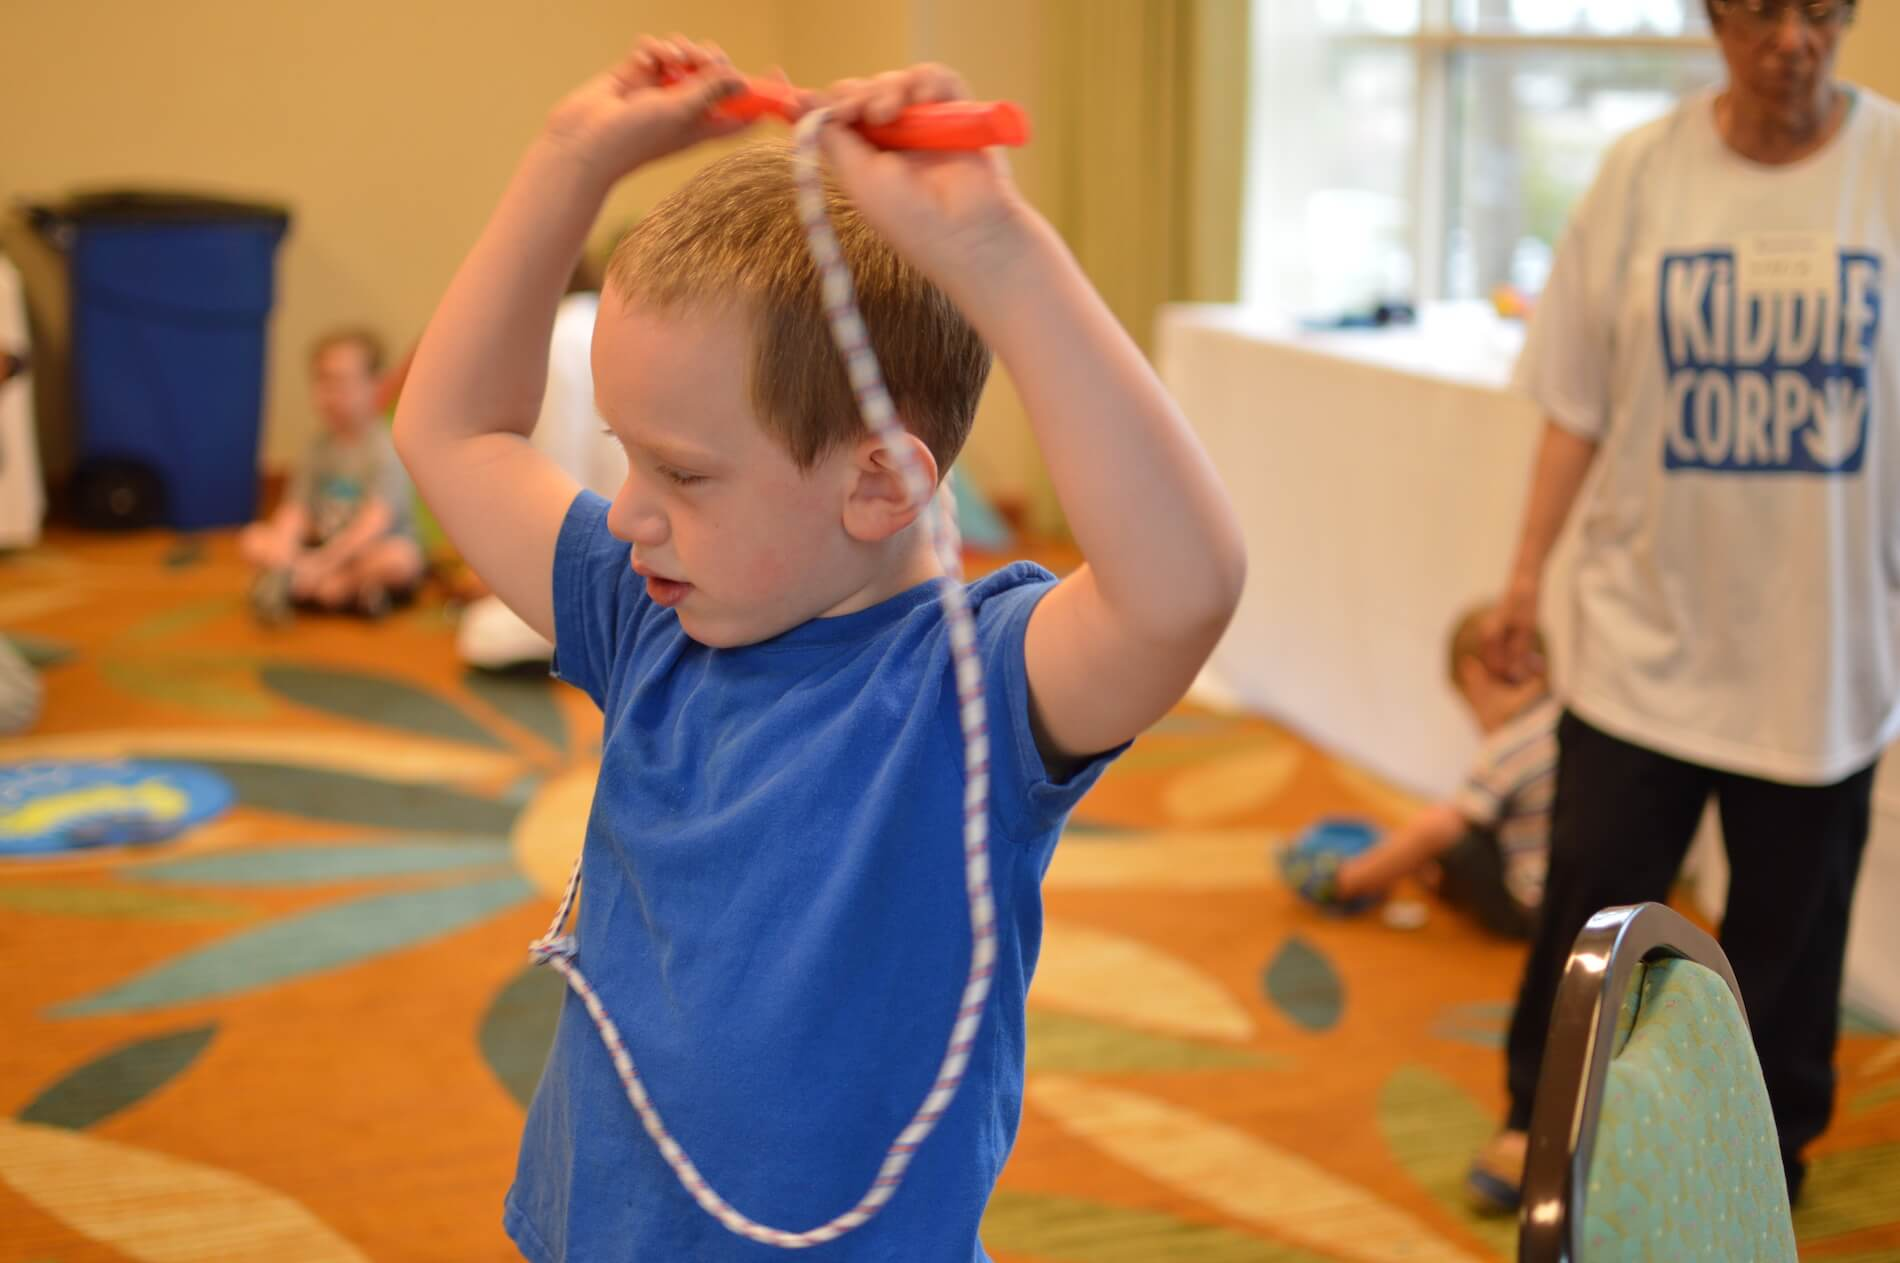 Child with rope